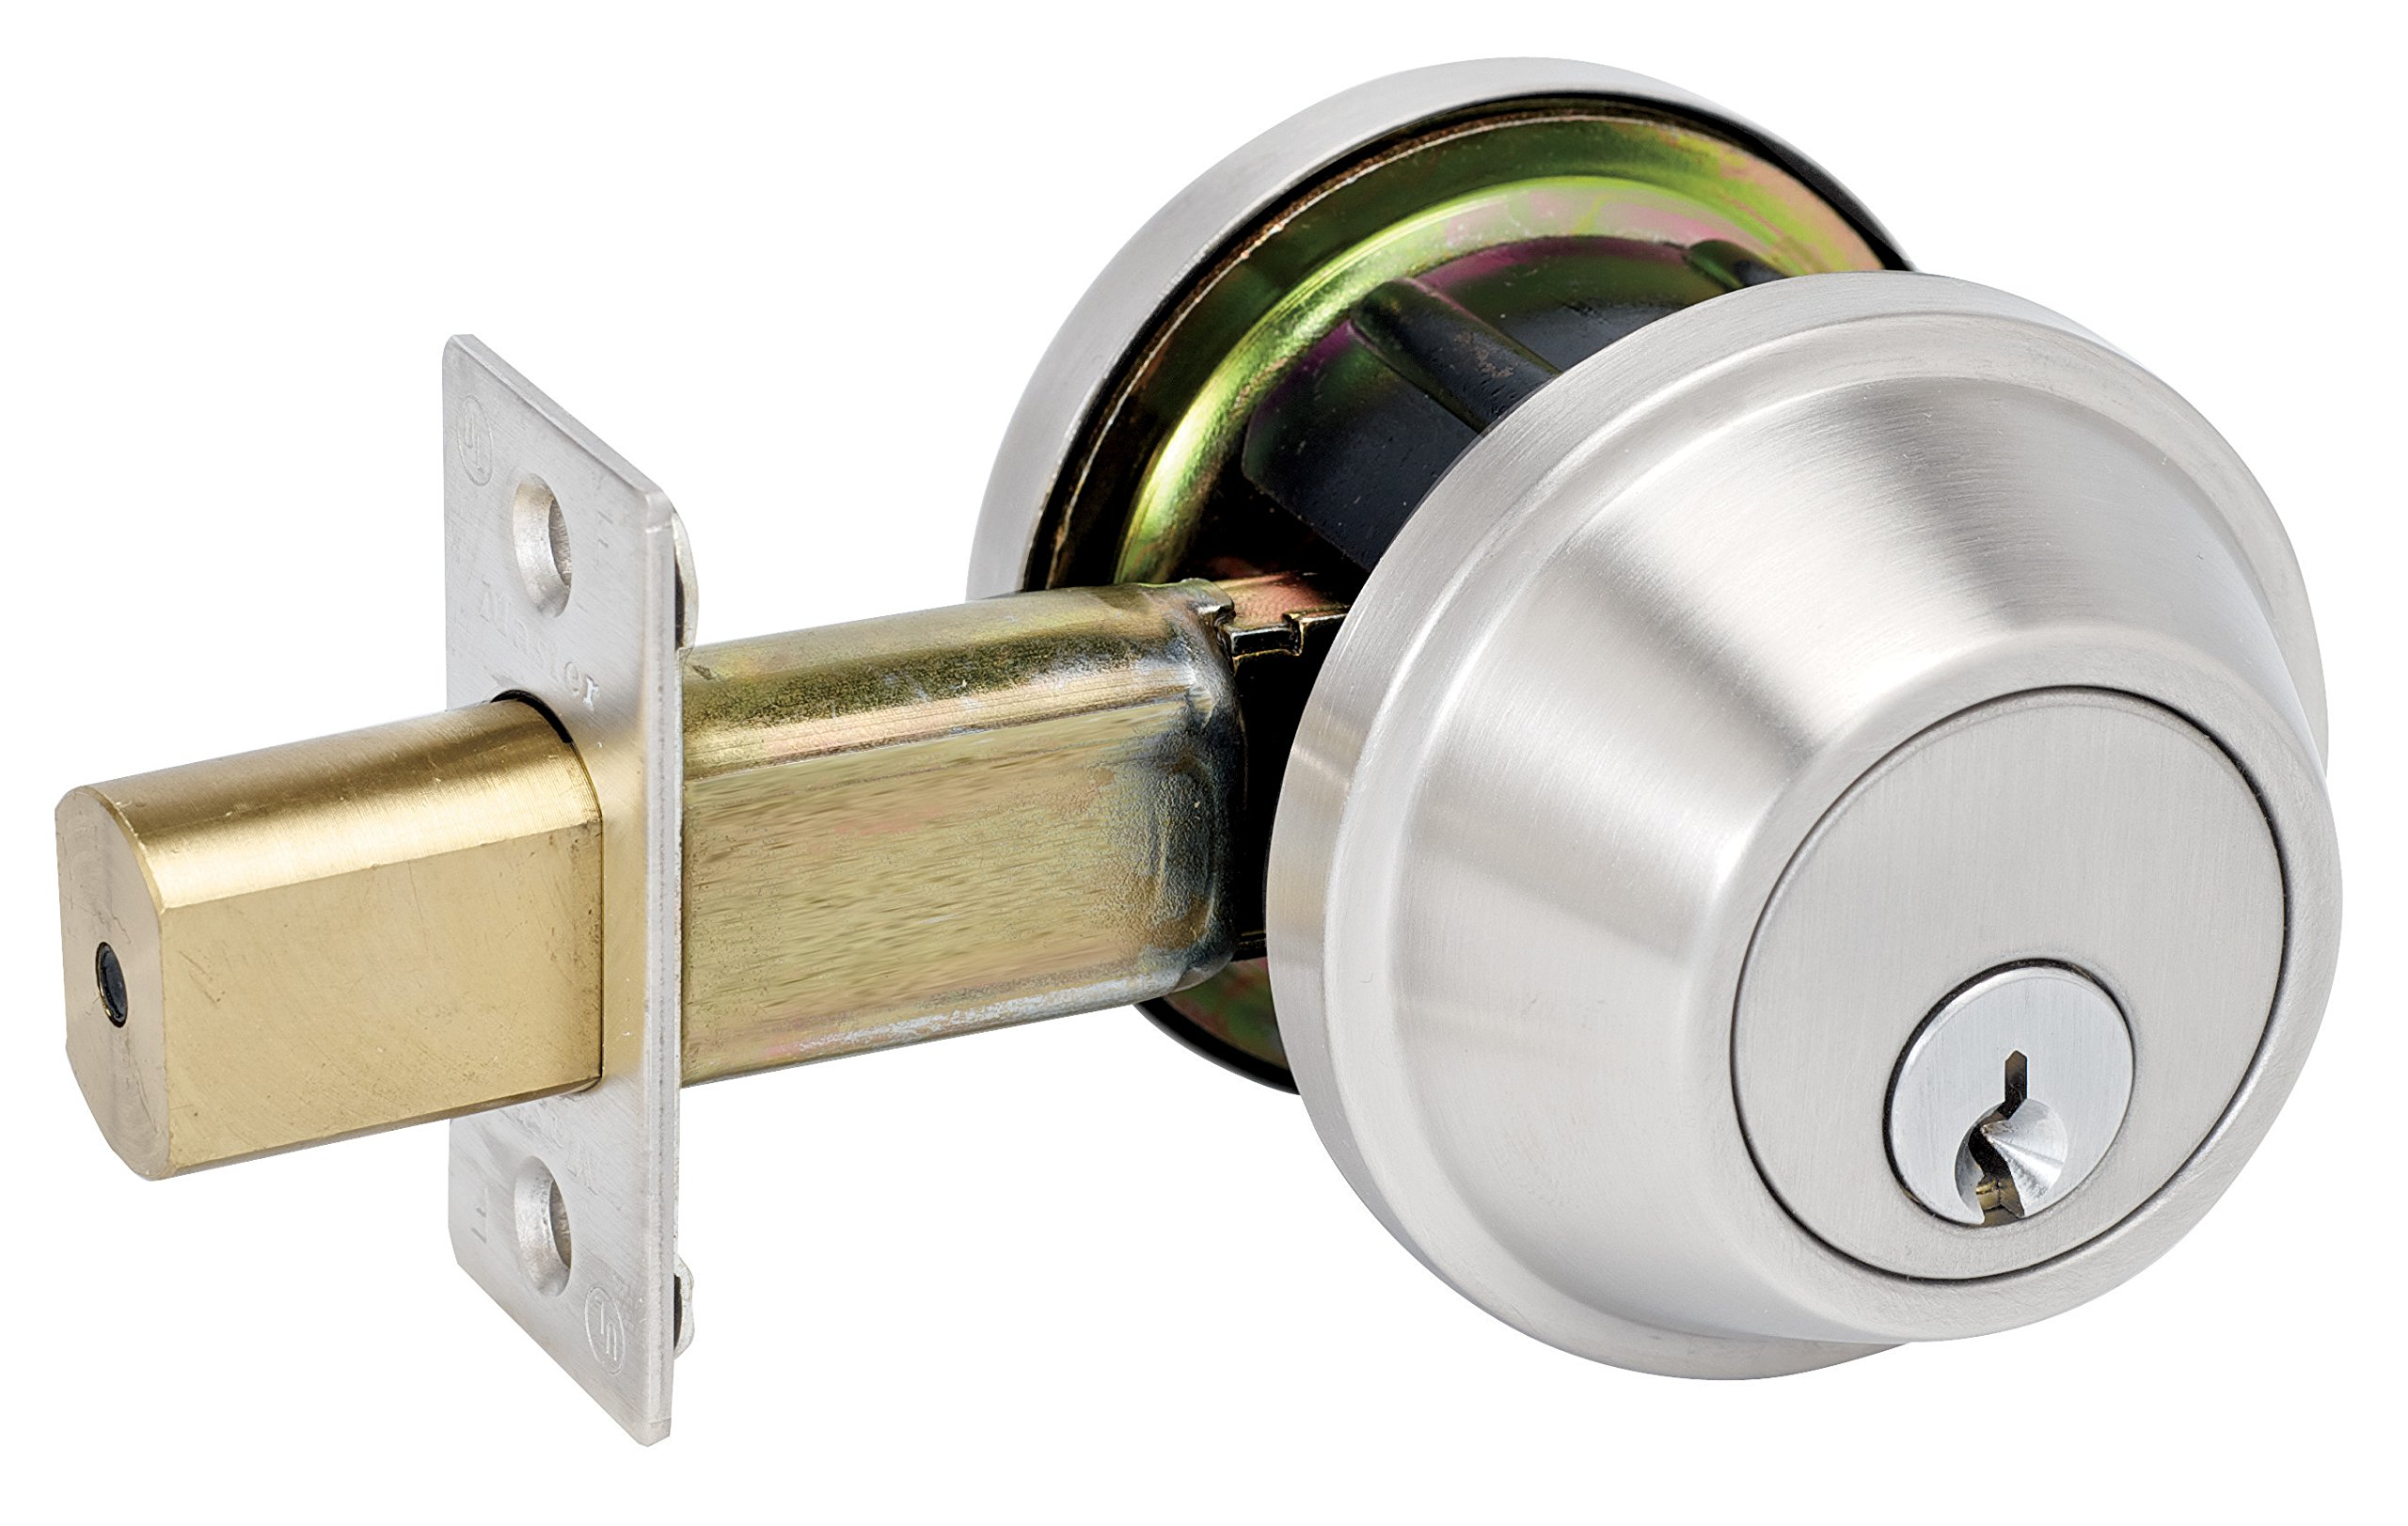 Master Lock DSCHSD32D Heavy Duty Single Cylinder, Grade 2 Commercial Deadbolt with Bump Stop, Brushed Chrome Finish